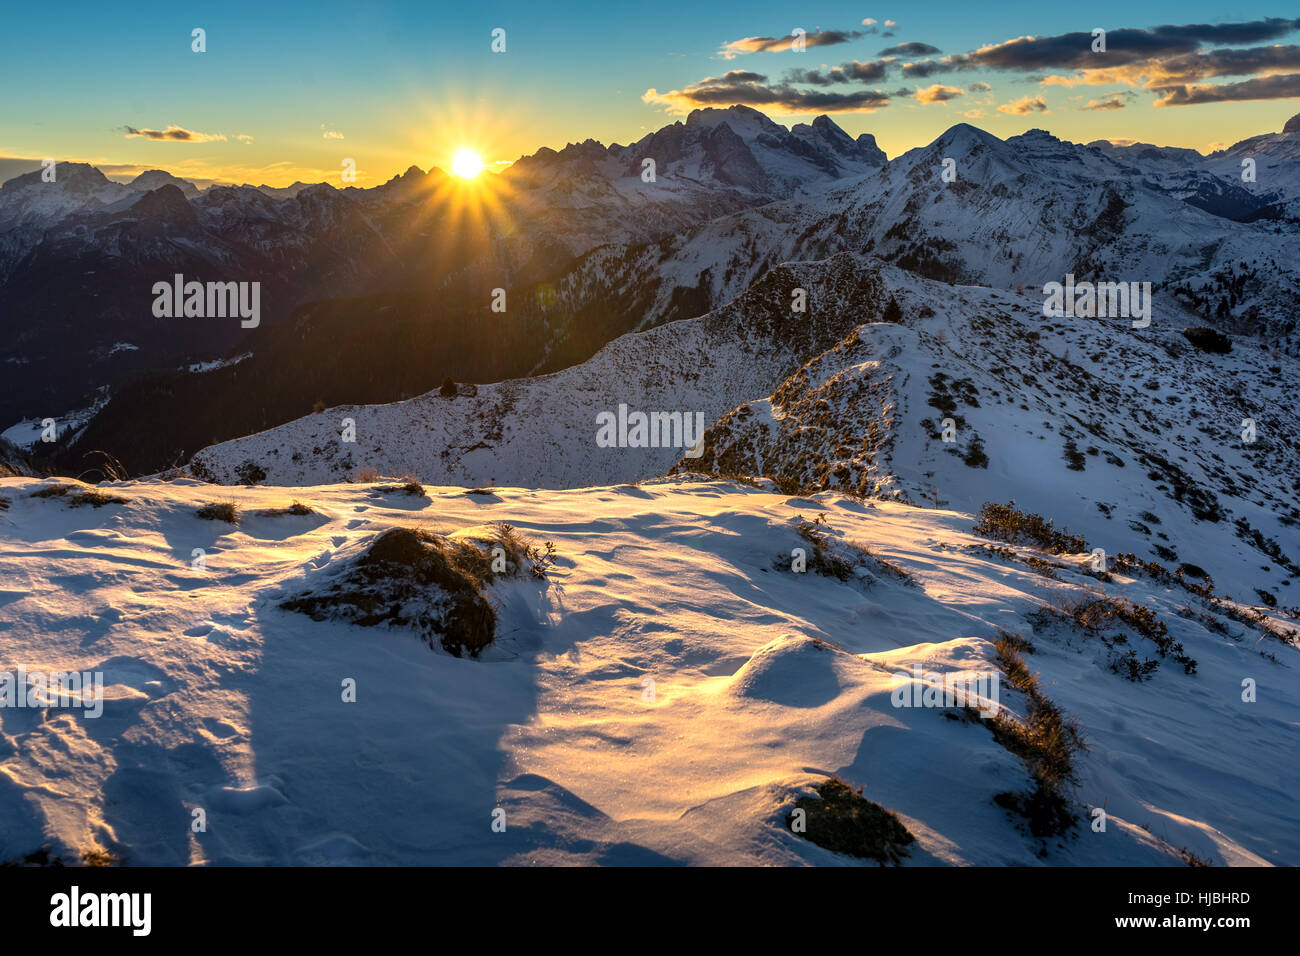 Passo Giau or Giau Pass at sunset near Cortina d`ampezzo in the Italian Dolomites - Belluno - Italy - Stock Image